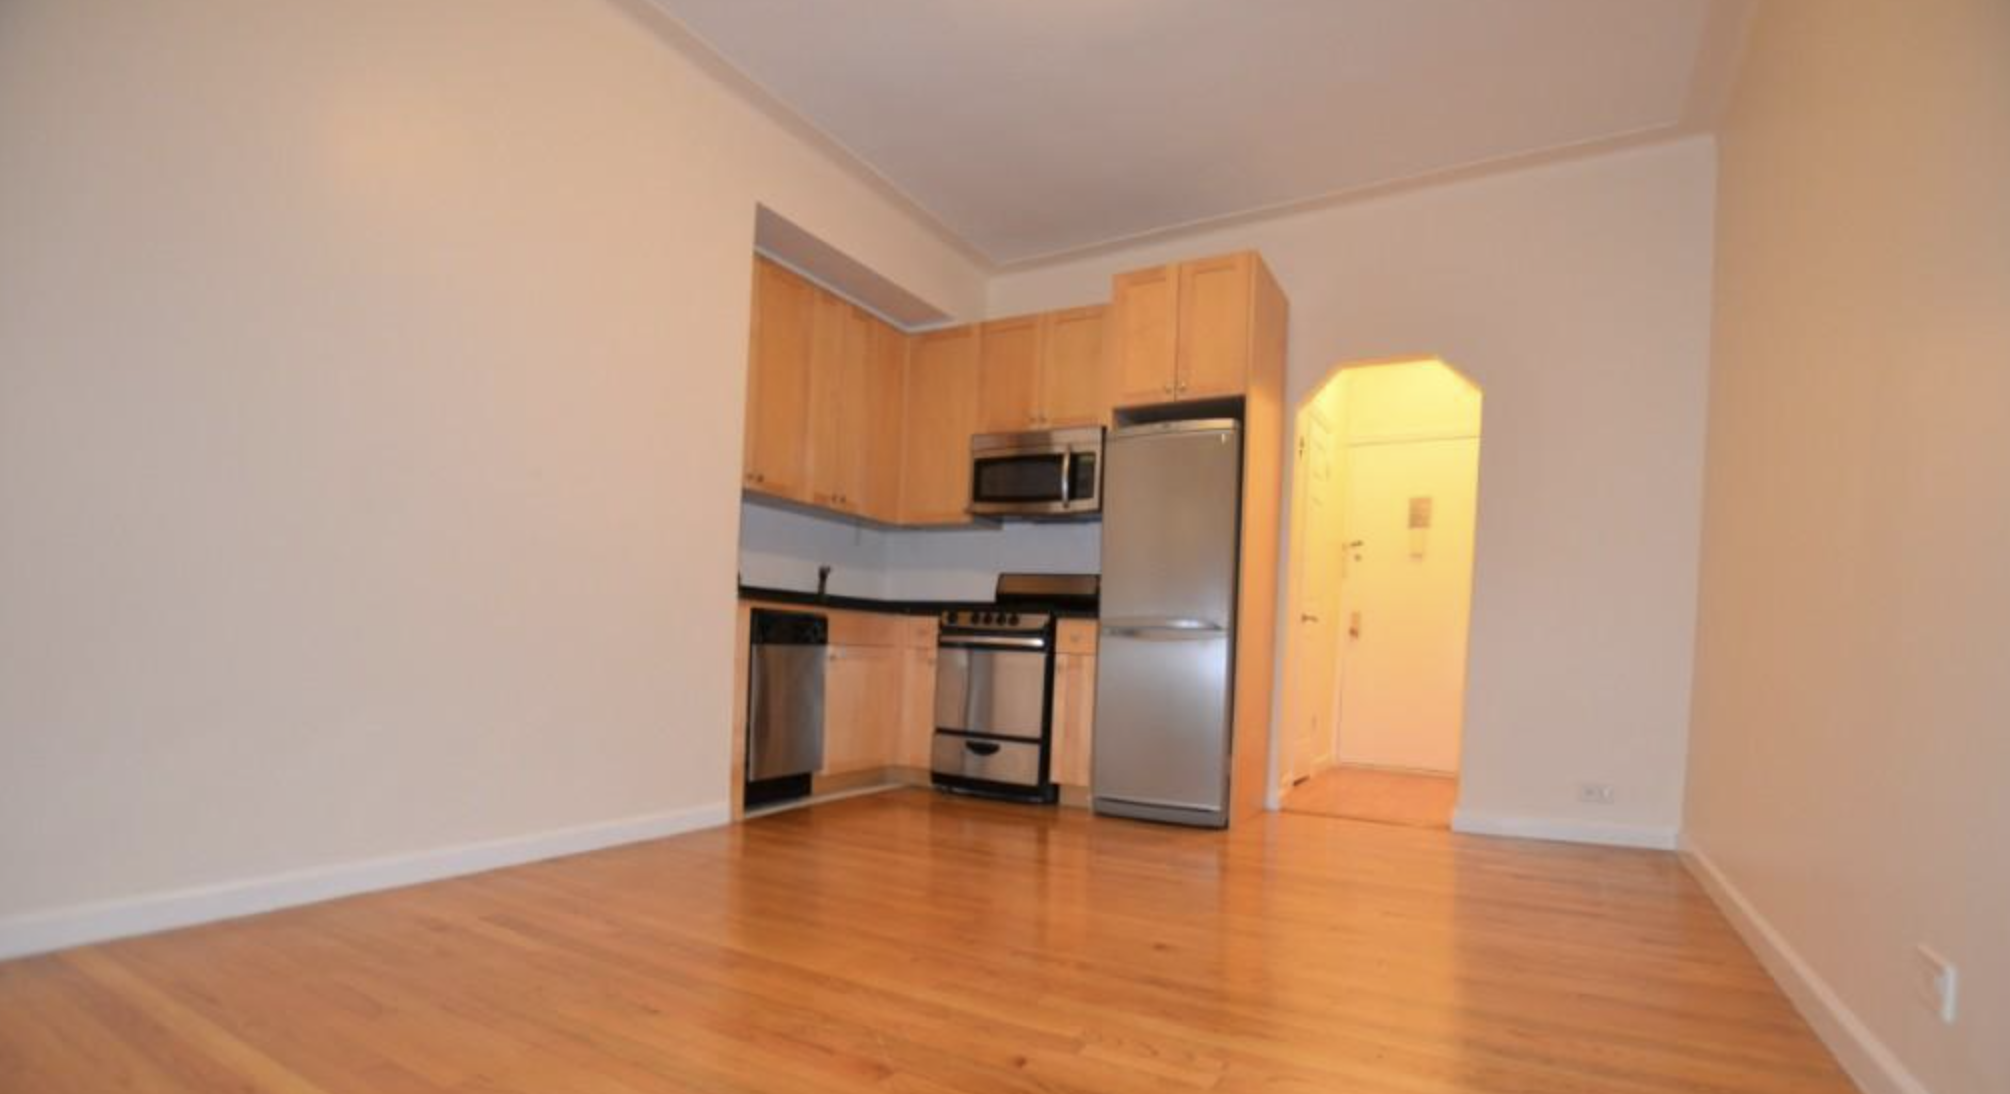 Cheapest Rentals In Greenwich Village Right Now – CBS New York